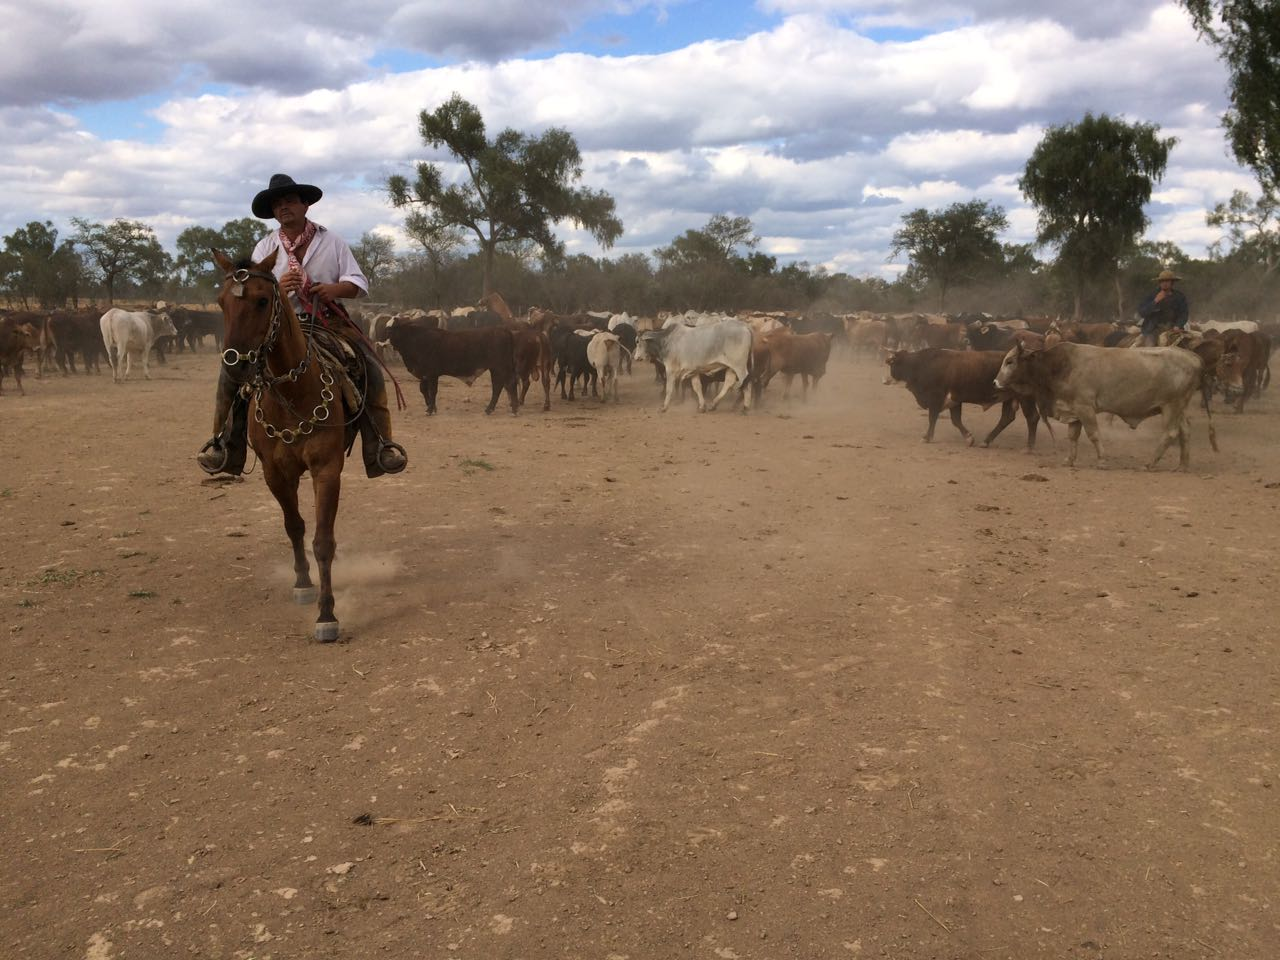 Paraguay cattle raising opportunity - cattle herder